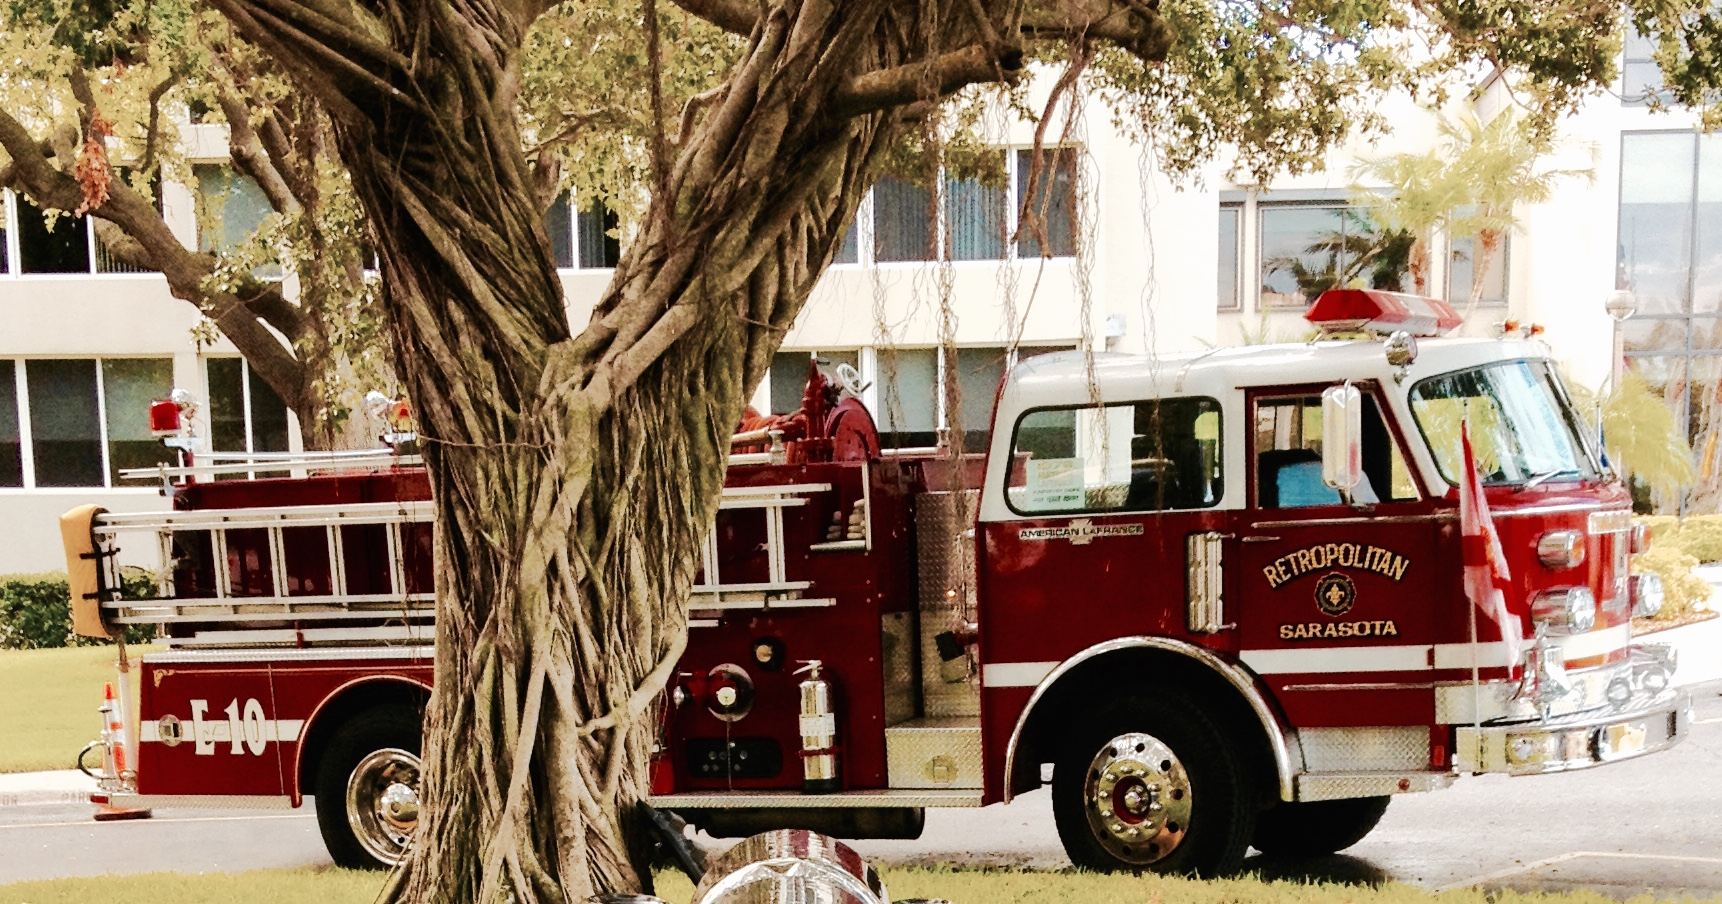 This was a very unique truck for me.  I purchased it from my fellow AACA member Bill Trier here in Venice, FL.  It was my first truck with an automatic transmission.  Here it's on display at Plymouth Harbor Retirement facility in the city of Sarasota on the Ringling Causway.  It was a tribute to 9/11.